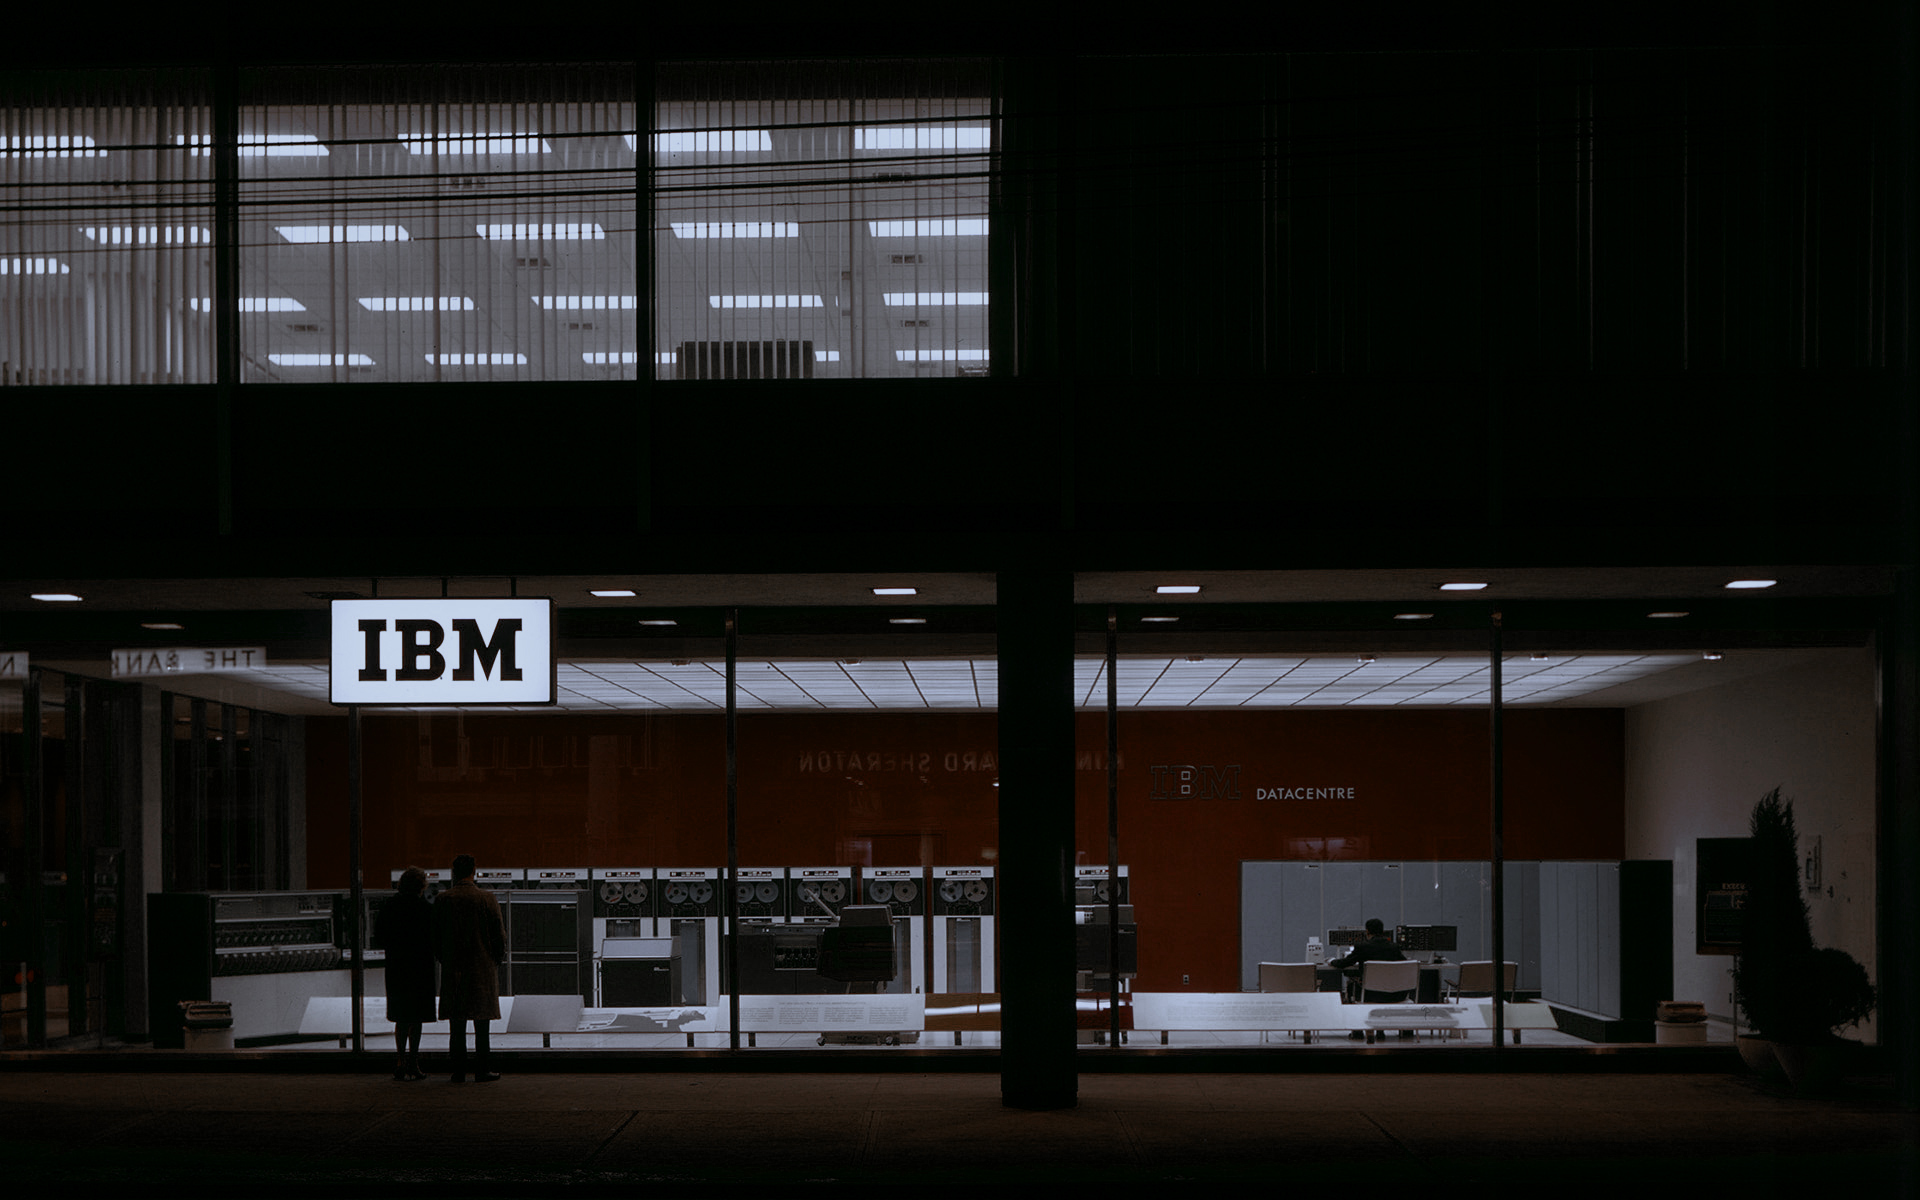 IBM HD Wallpaper